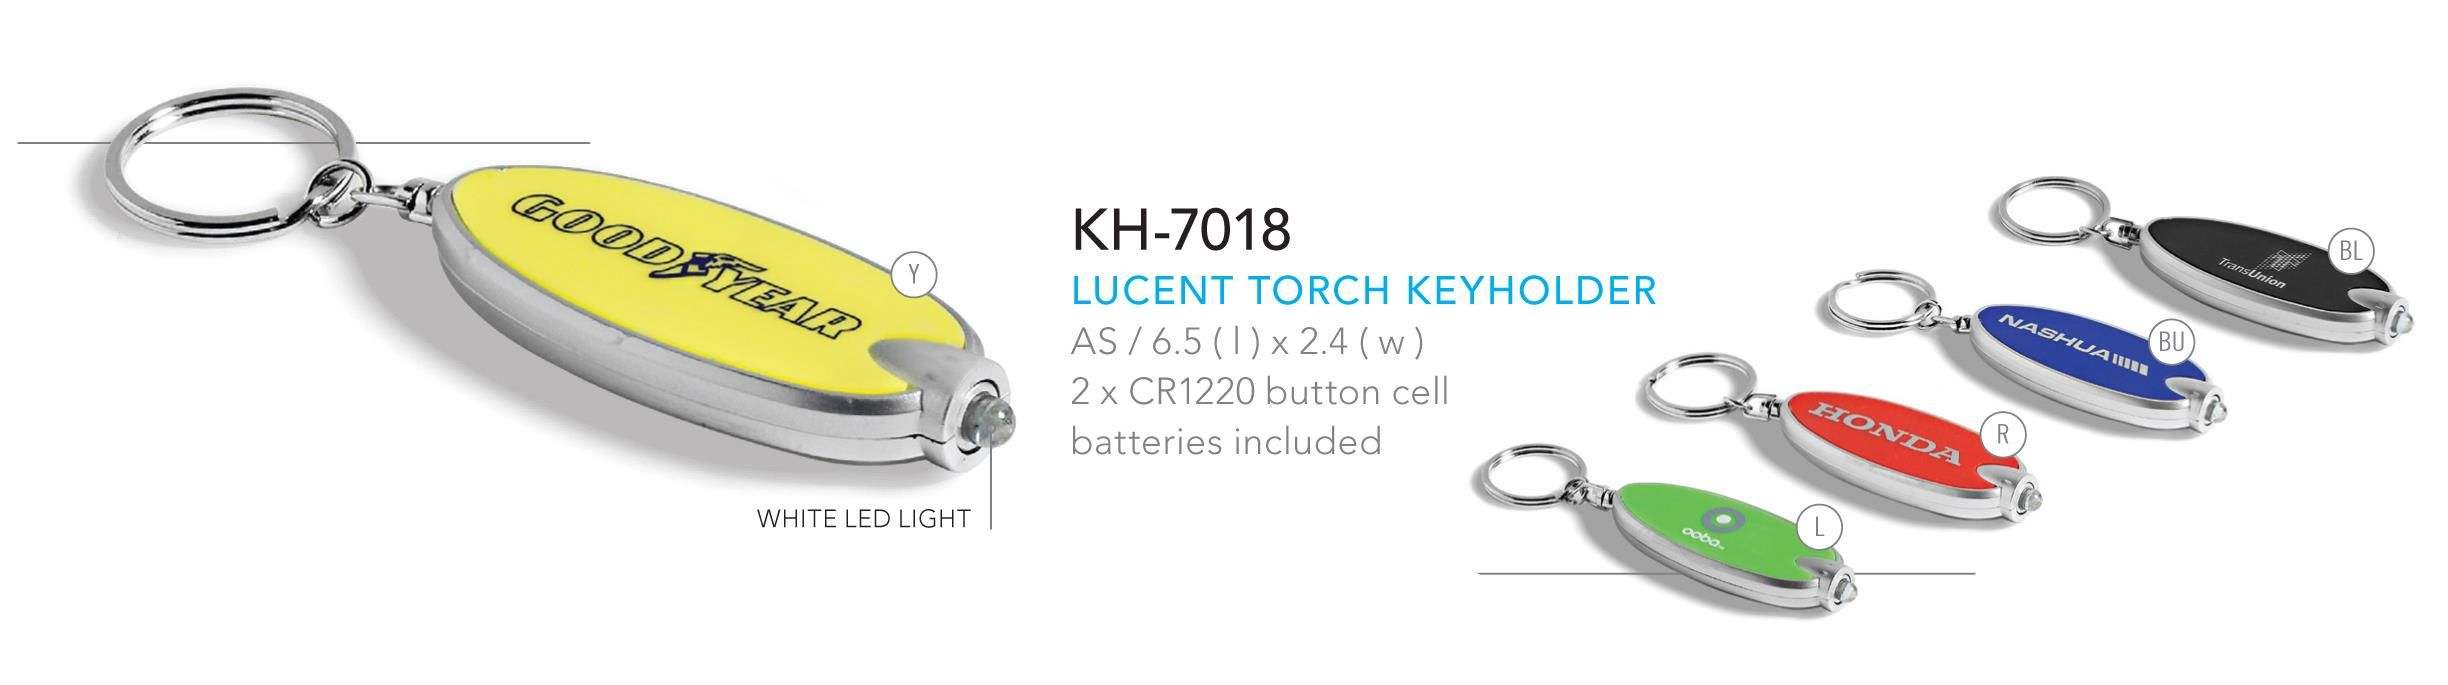 Lucent Torch Keyholder | Corporate Gifts - Key Holders or Key-rings http://www.ignitionmarketing.co.za/corporate-gifts